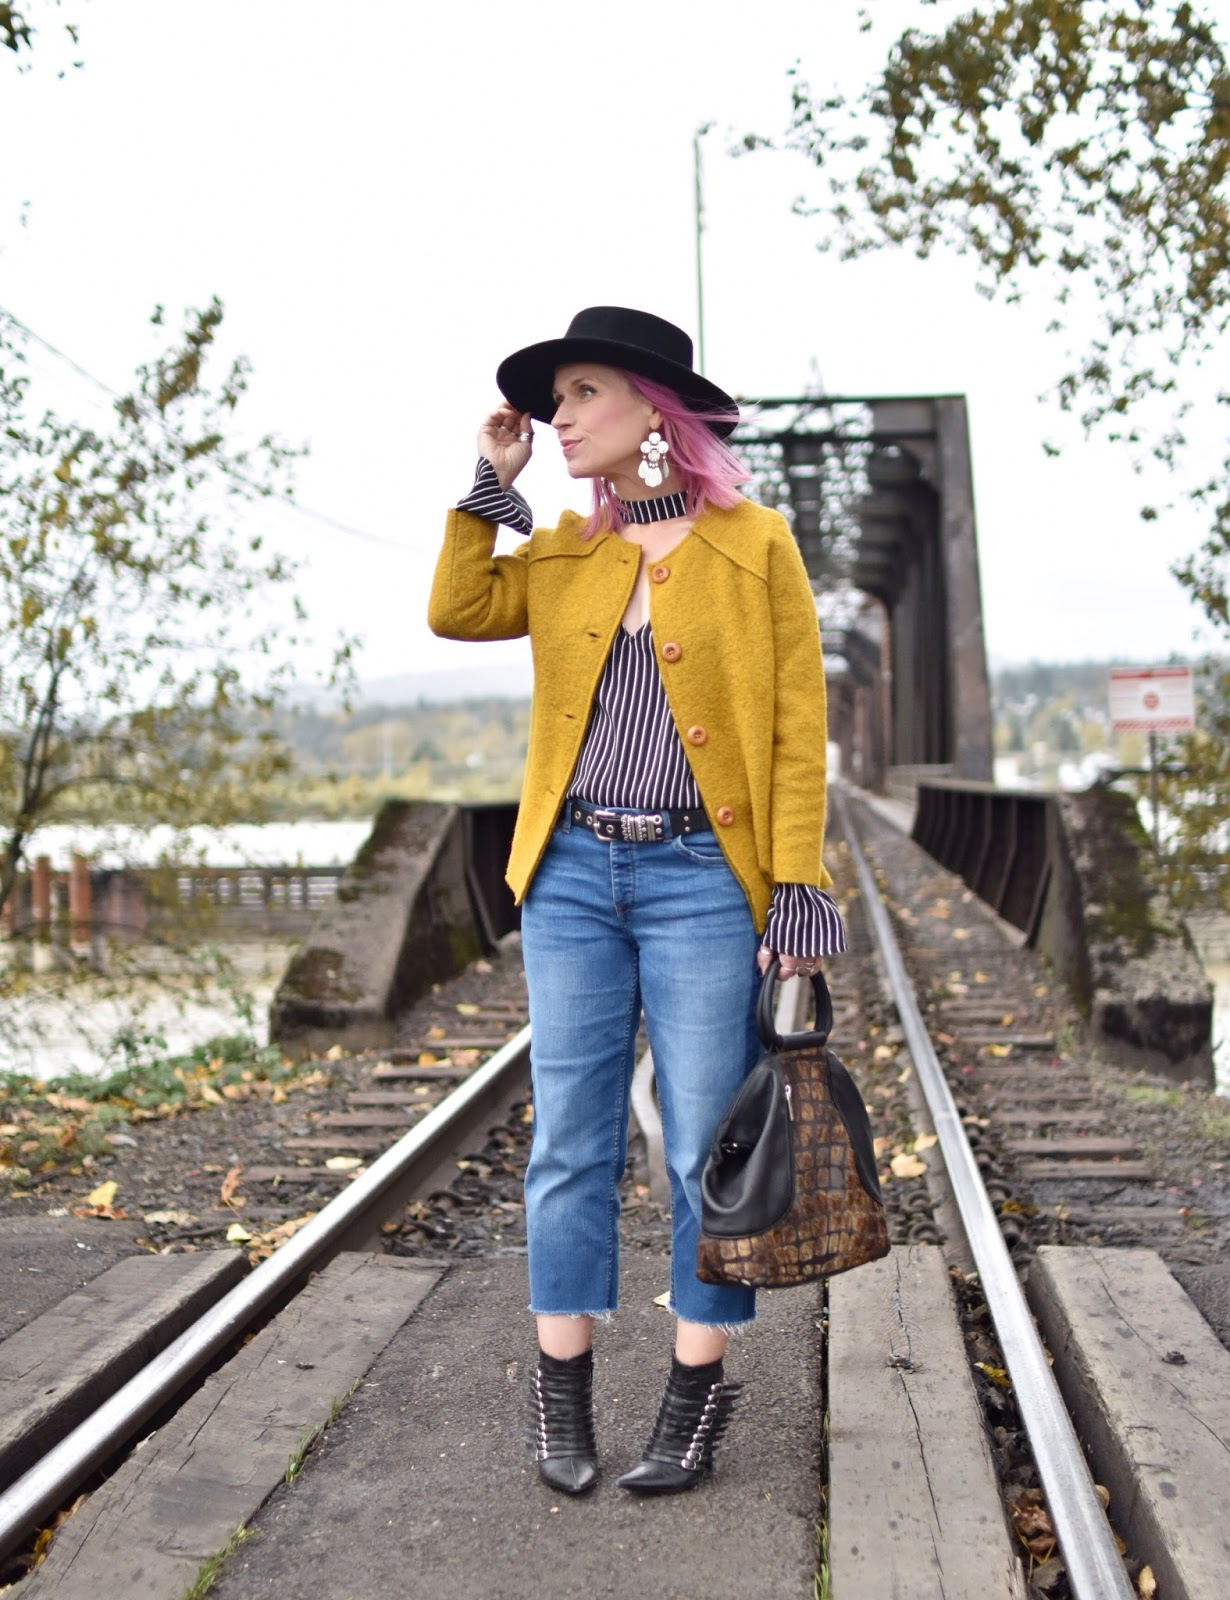 Monika Faulkner outfit inspiration - mustard wool jacket, striped blouse, cropped jeans, stiletto booties, flat-top felt fedora